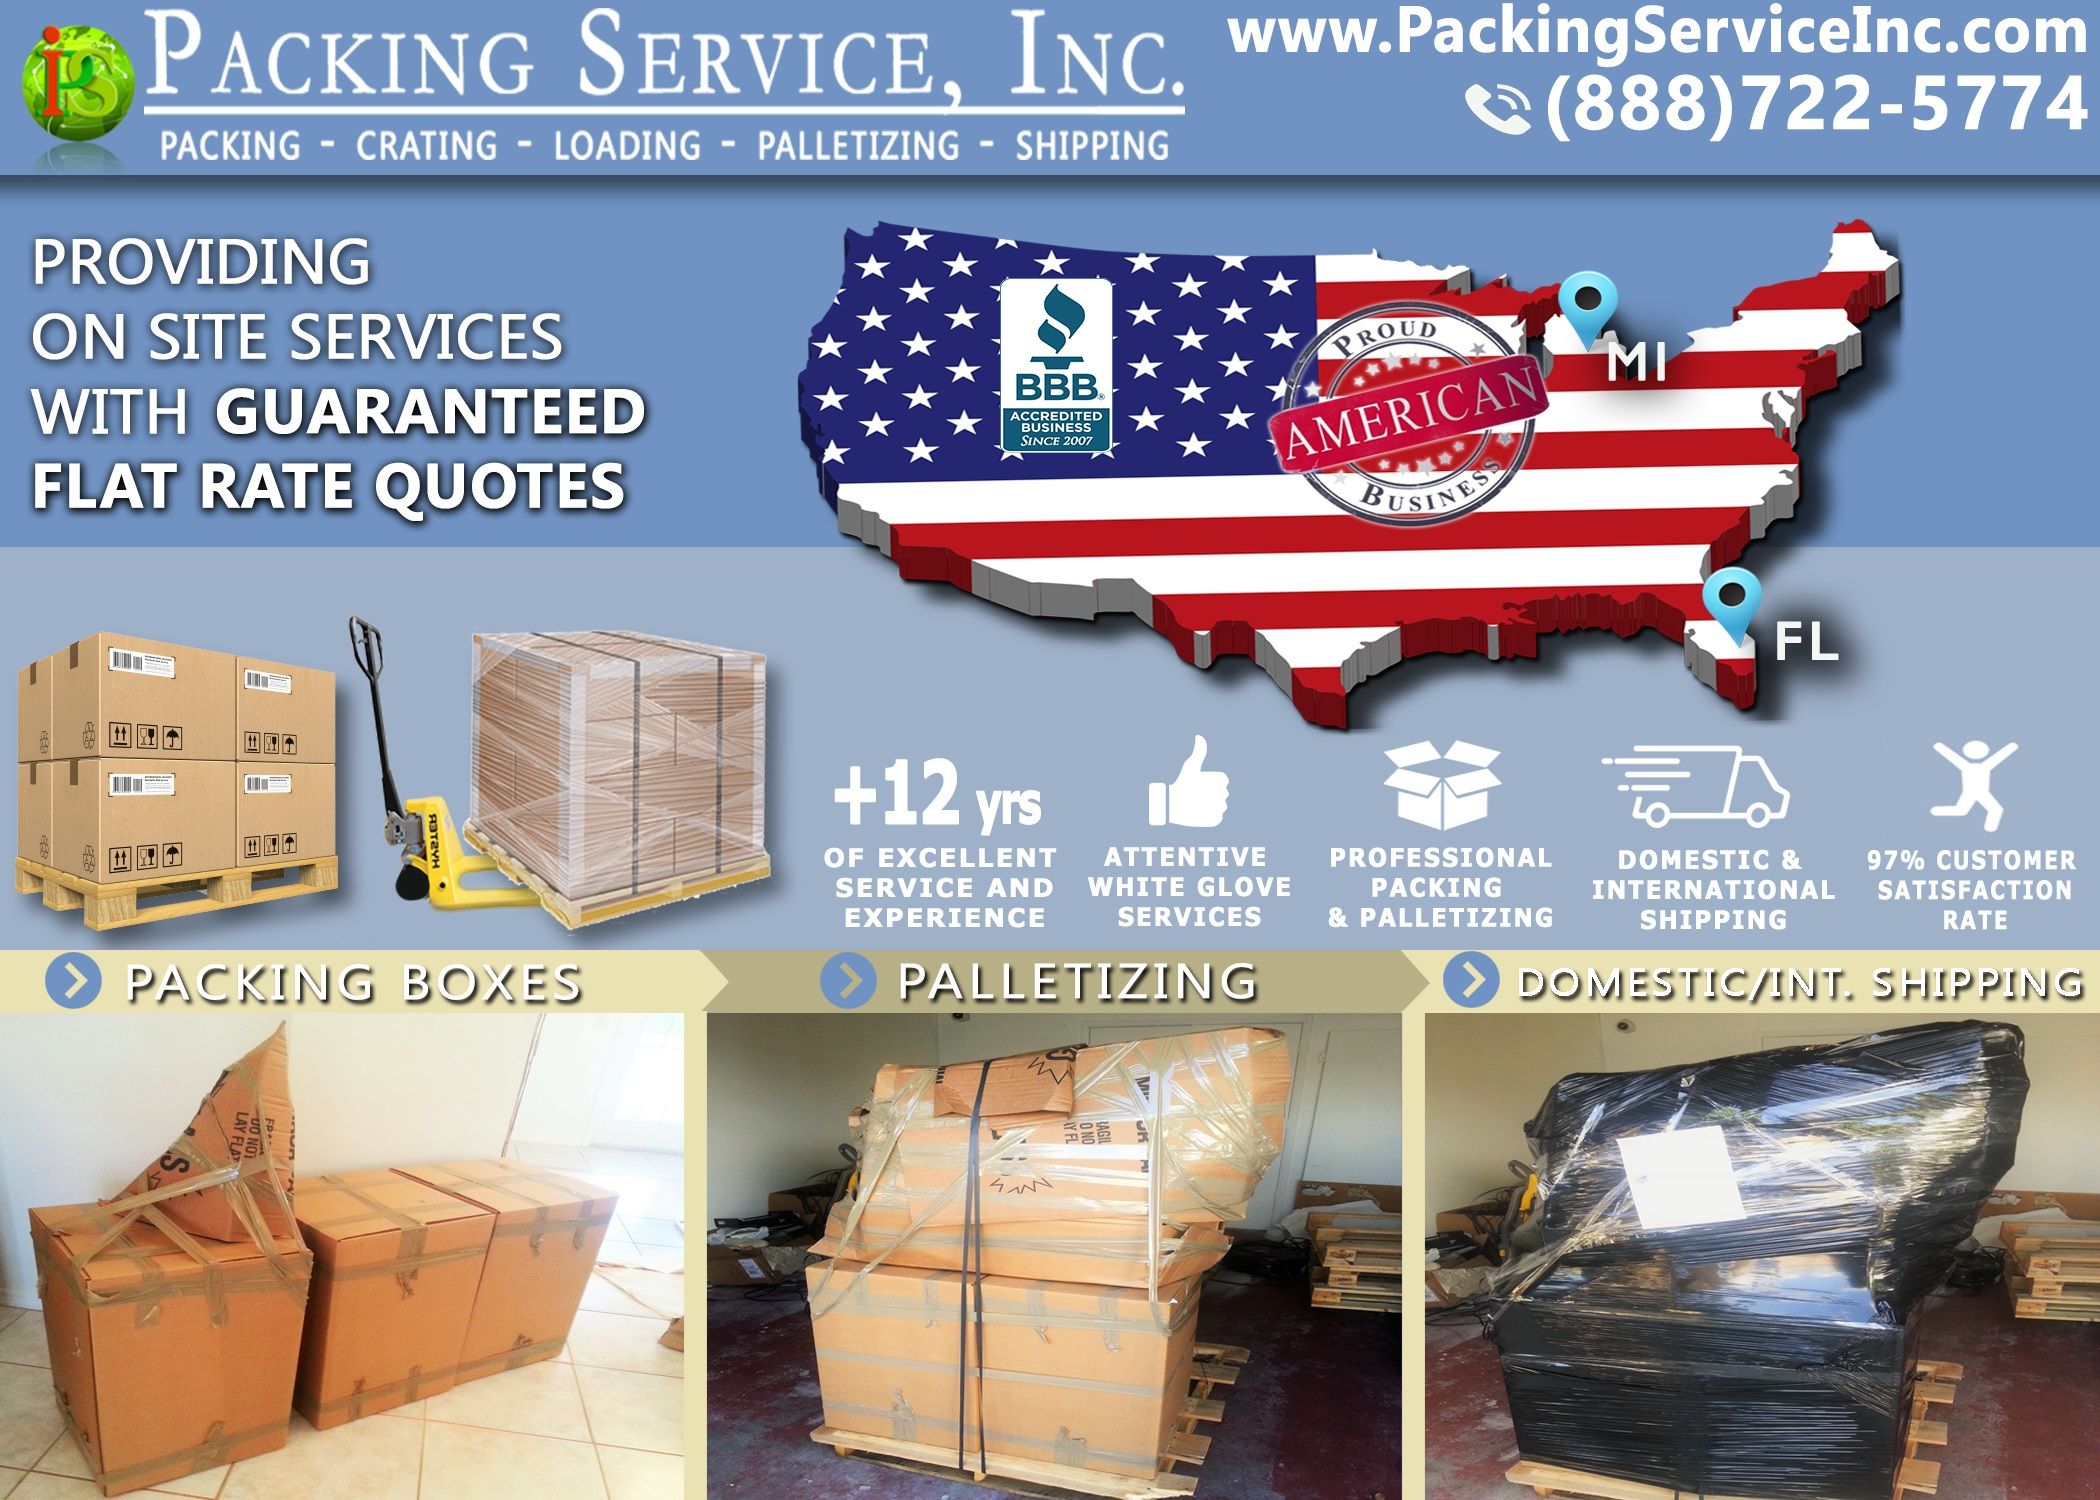 packing-boxes-palletizing-and-shipping-from-sebastian-fl-to-flint-mi-with-packing-service-inc-631